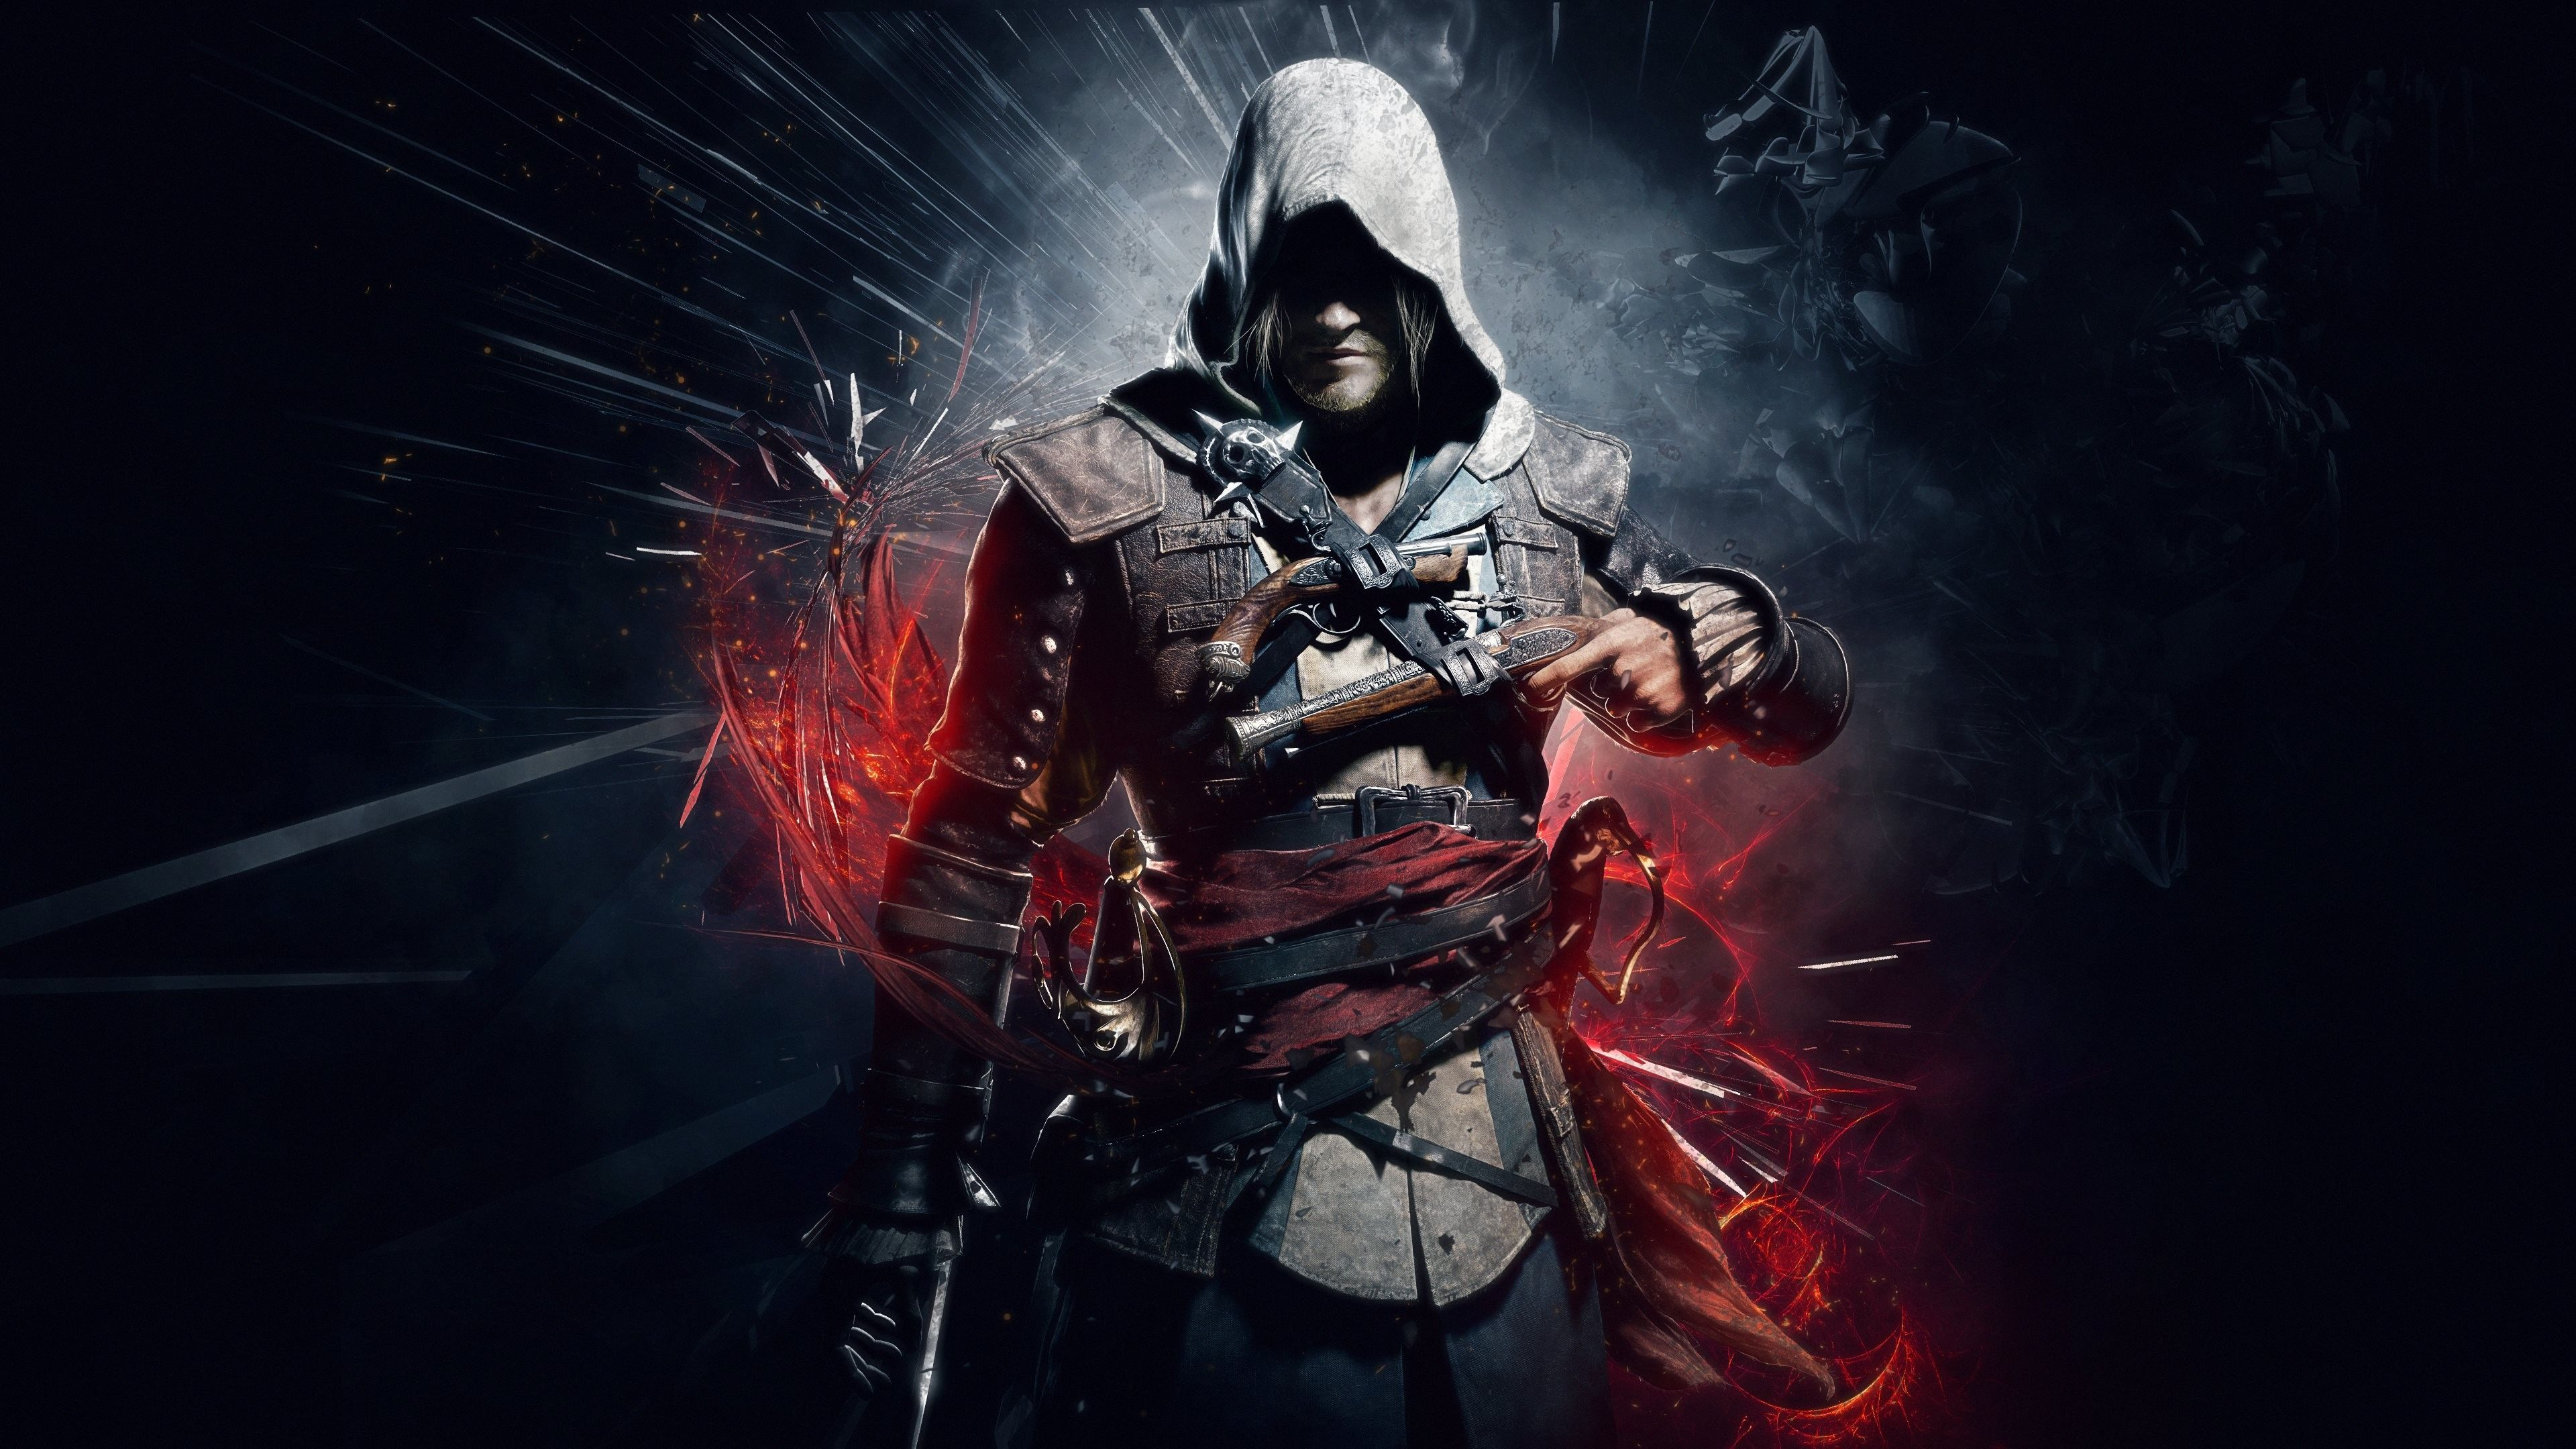 Assassin S 4k Wallpapers For Your Desktop Or Mobile Screen Free And Easy To Download